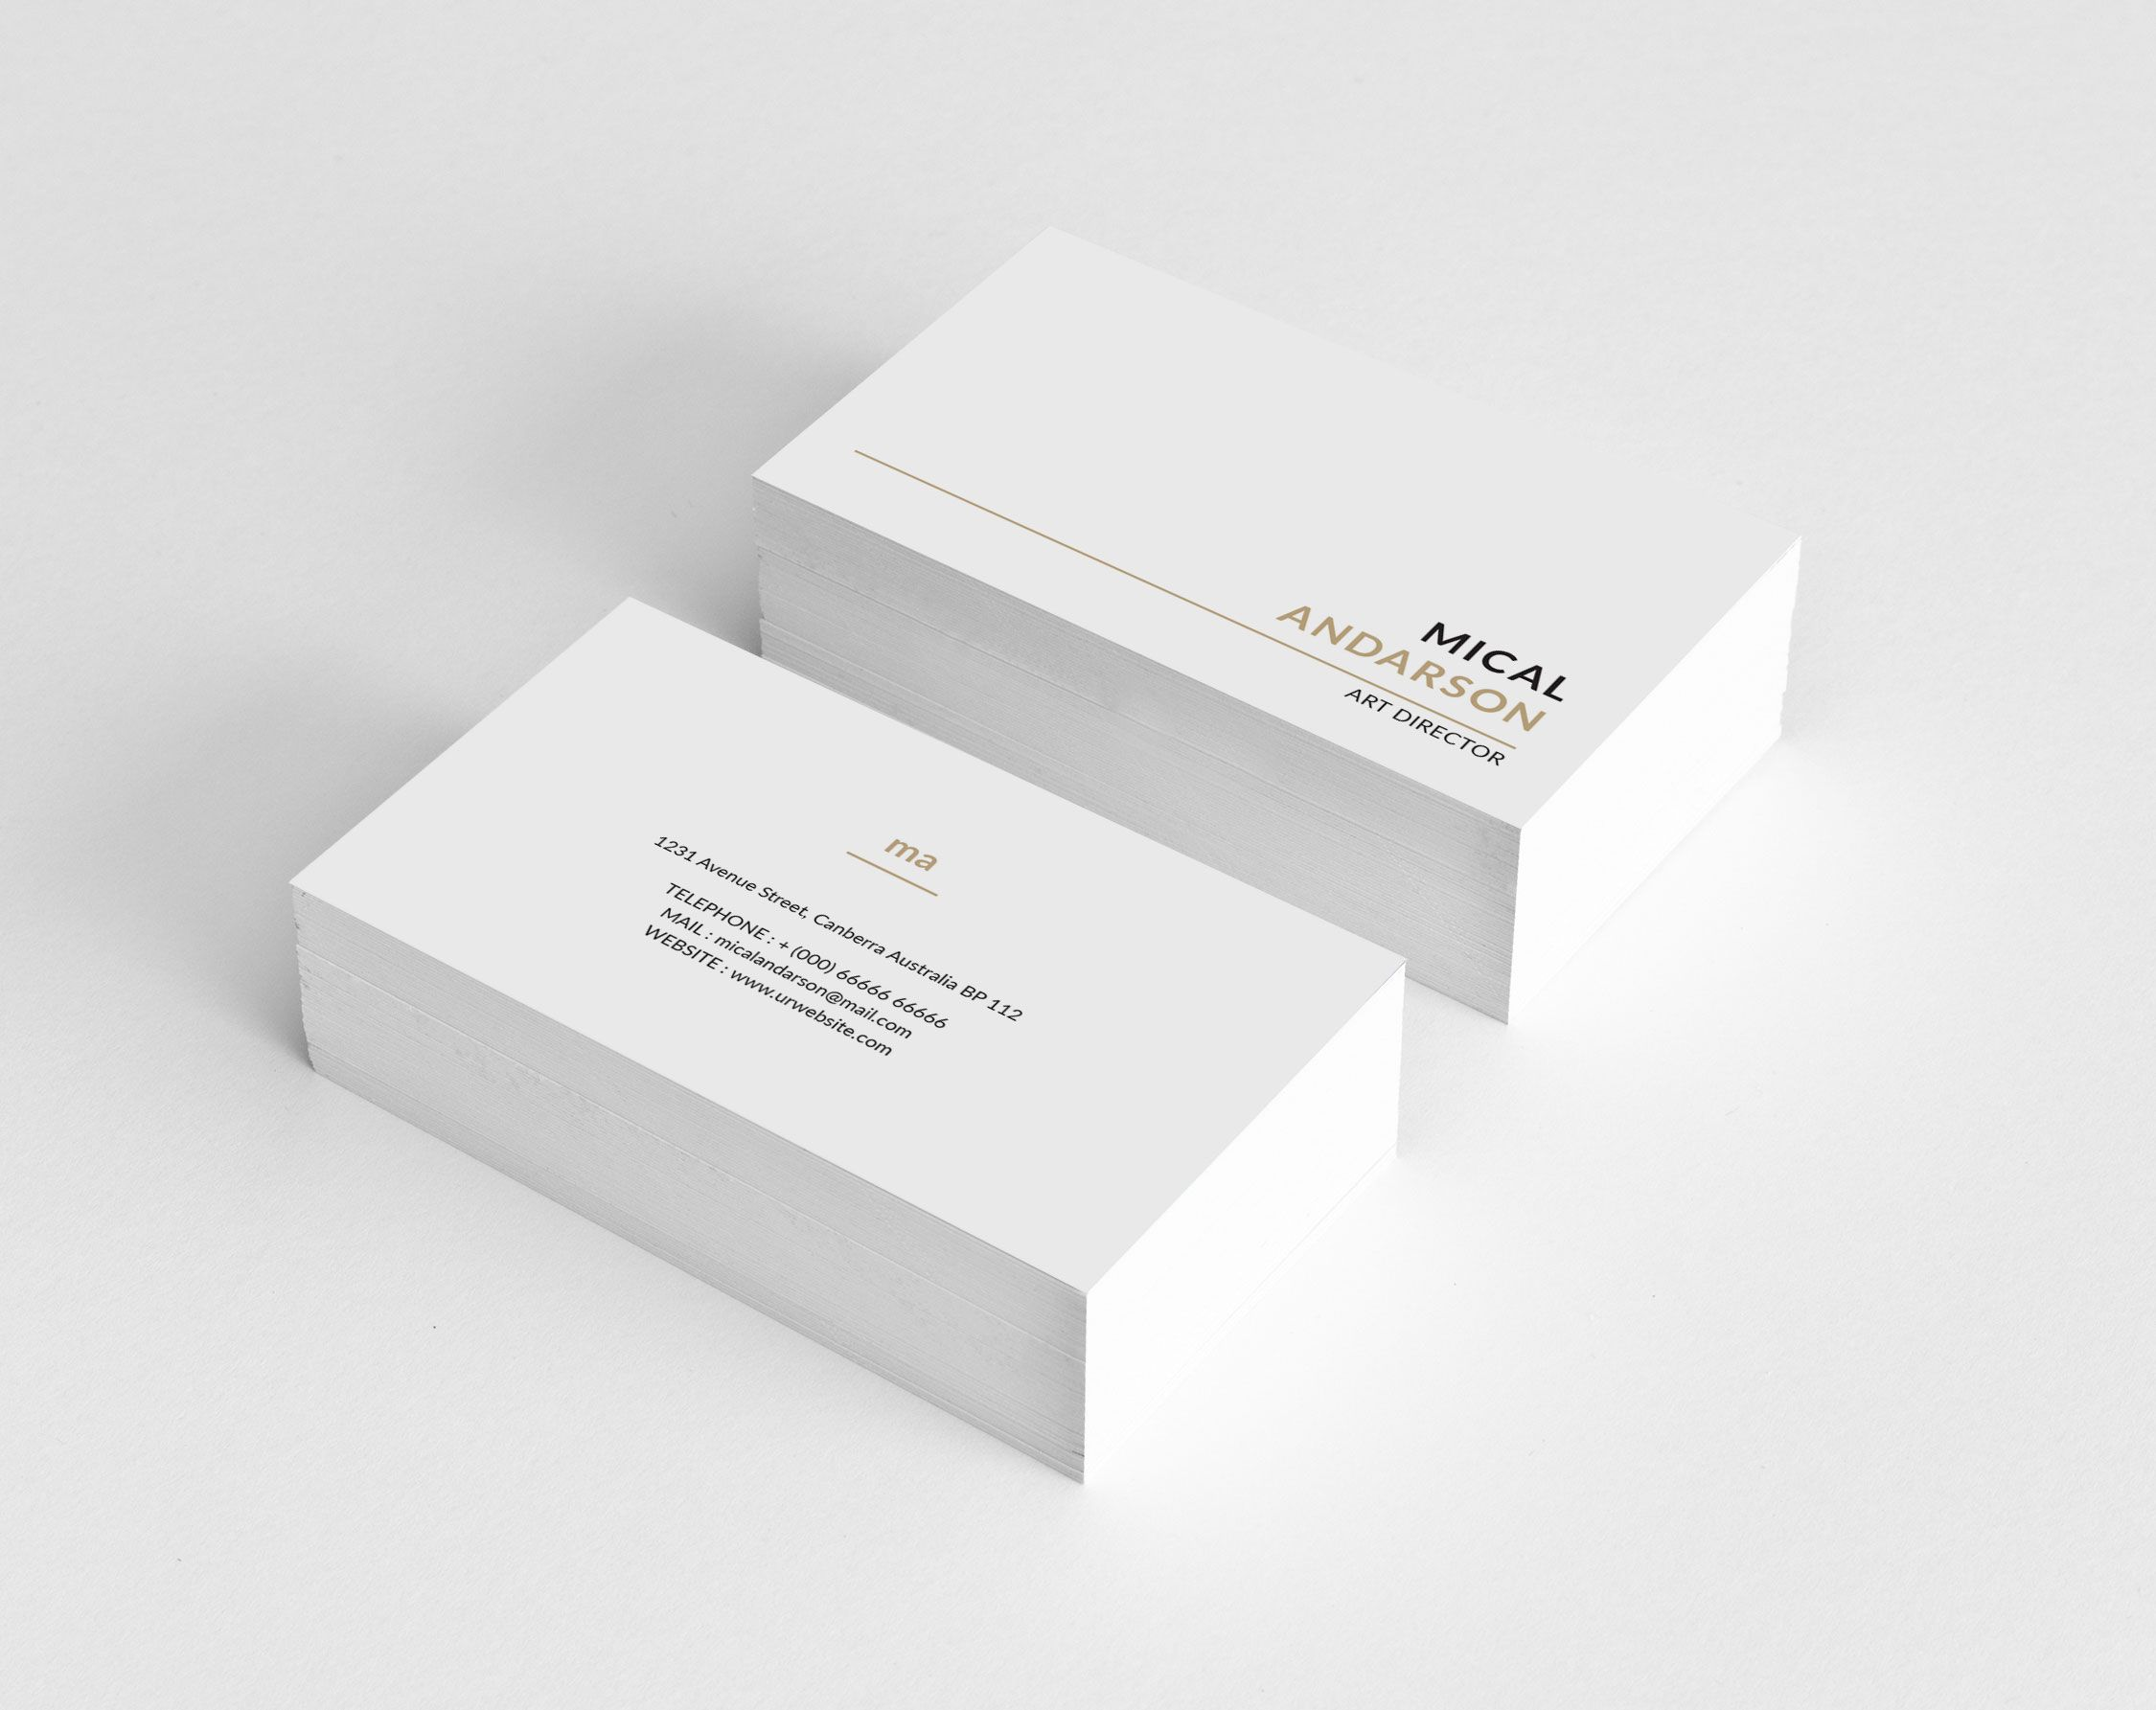 Basic Visit Card Templates Graphic Templates Photography Business Cards Simple Business Card Design Simple Visiting Cards